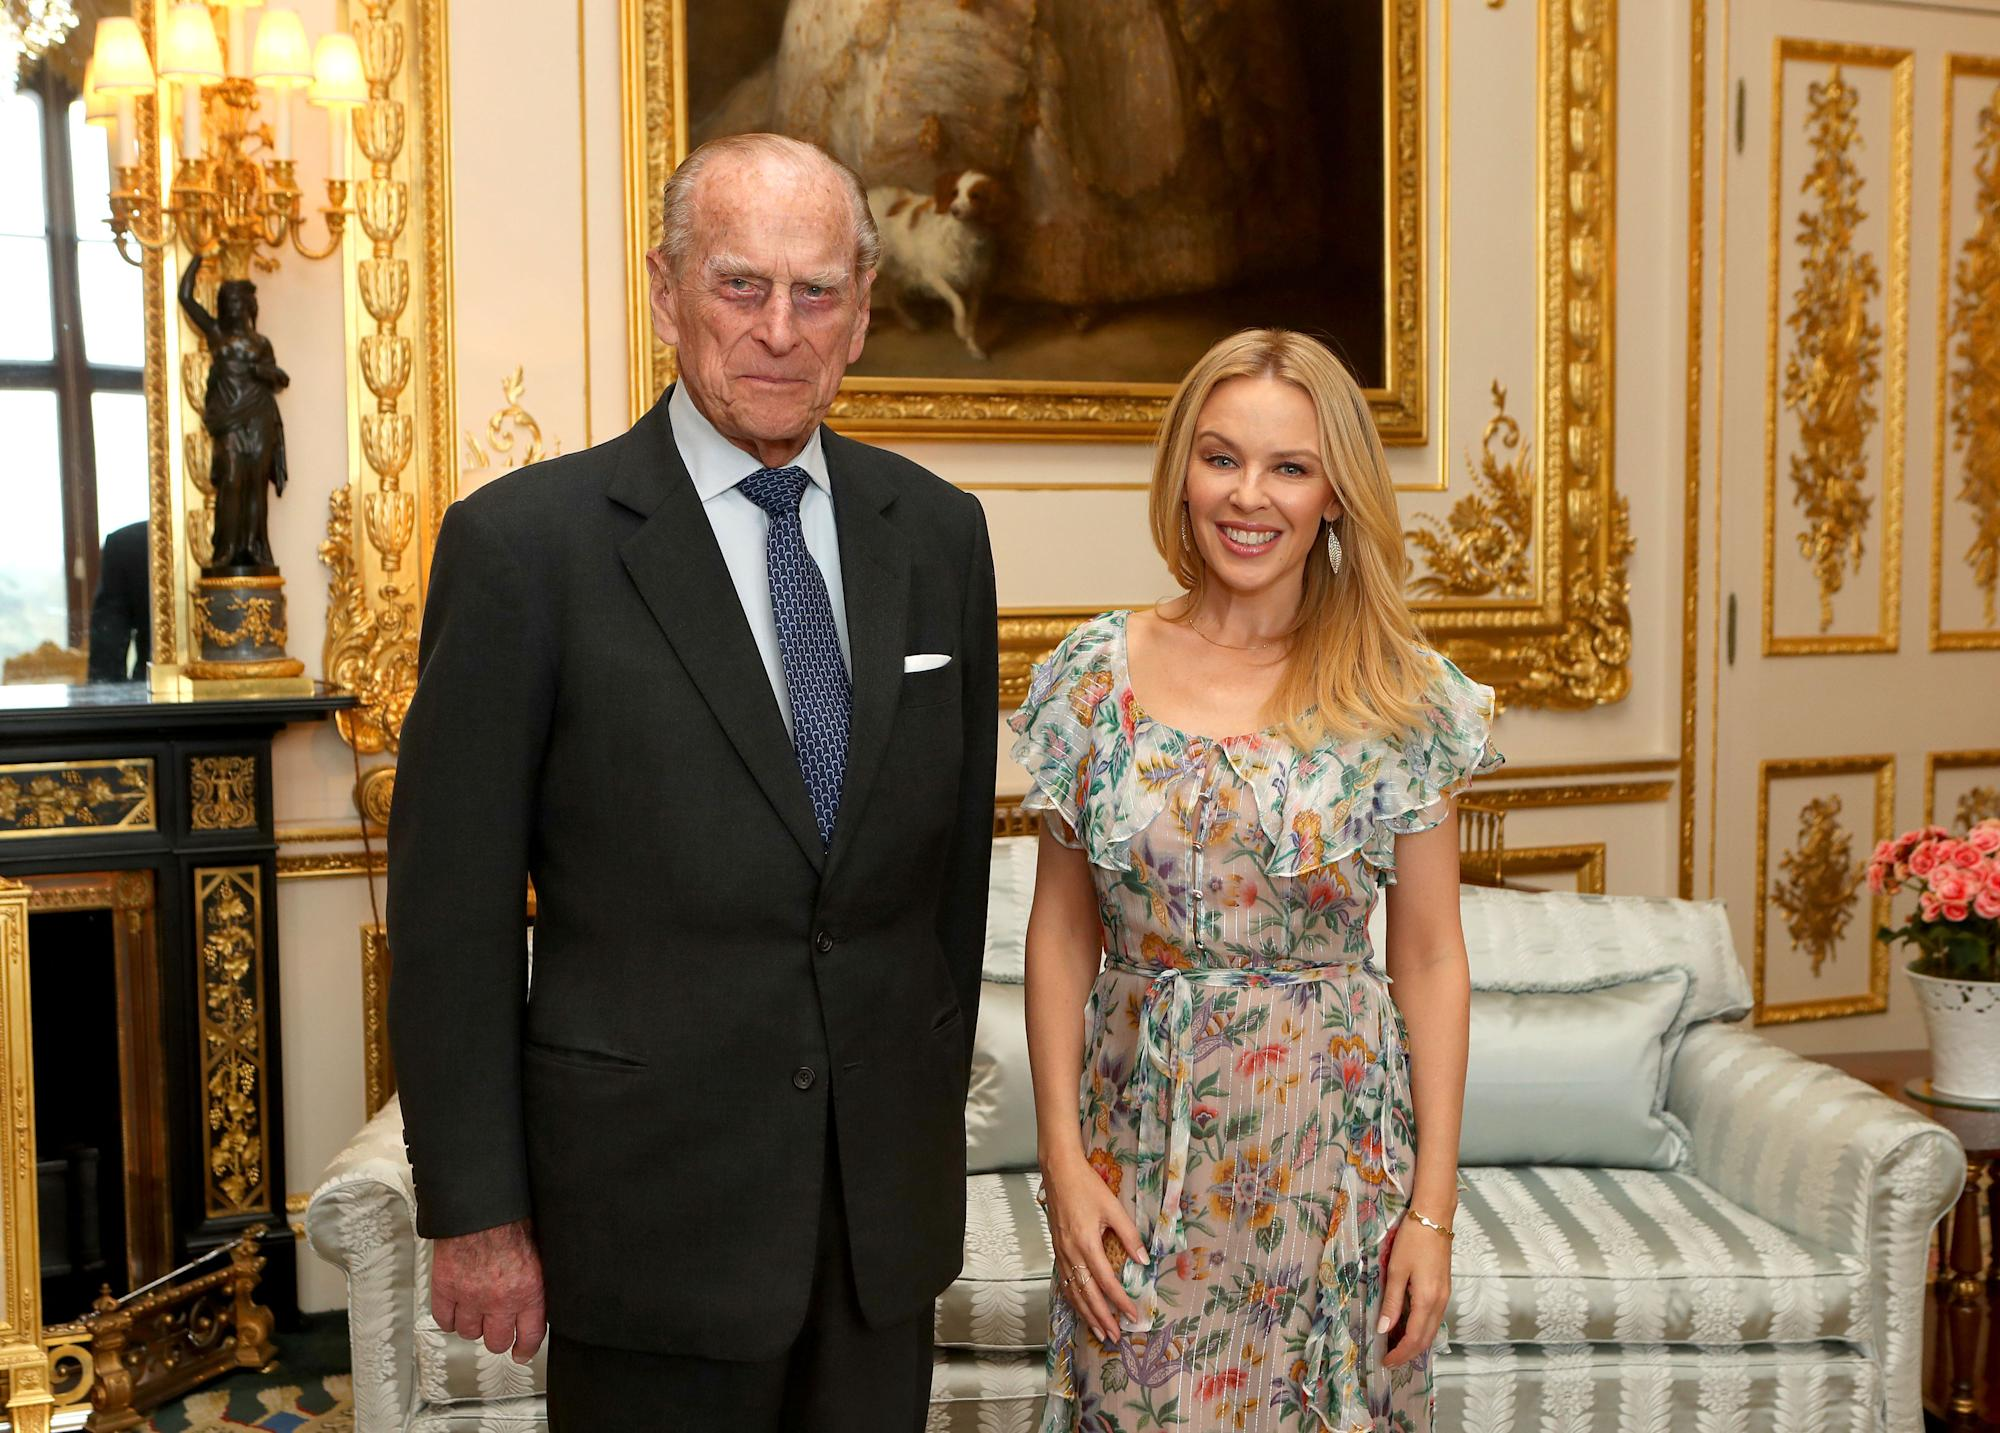 Kylie Minogue's touching tribute to late Prince Philip: 'RIP'